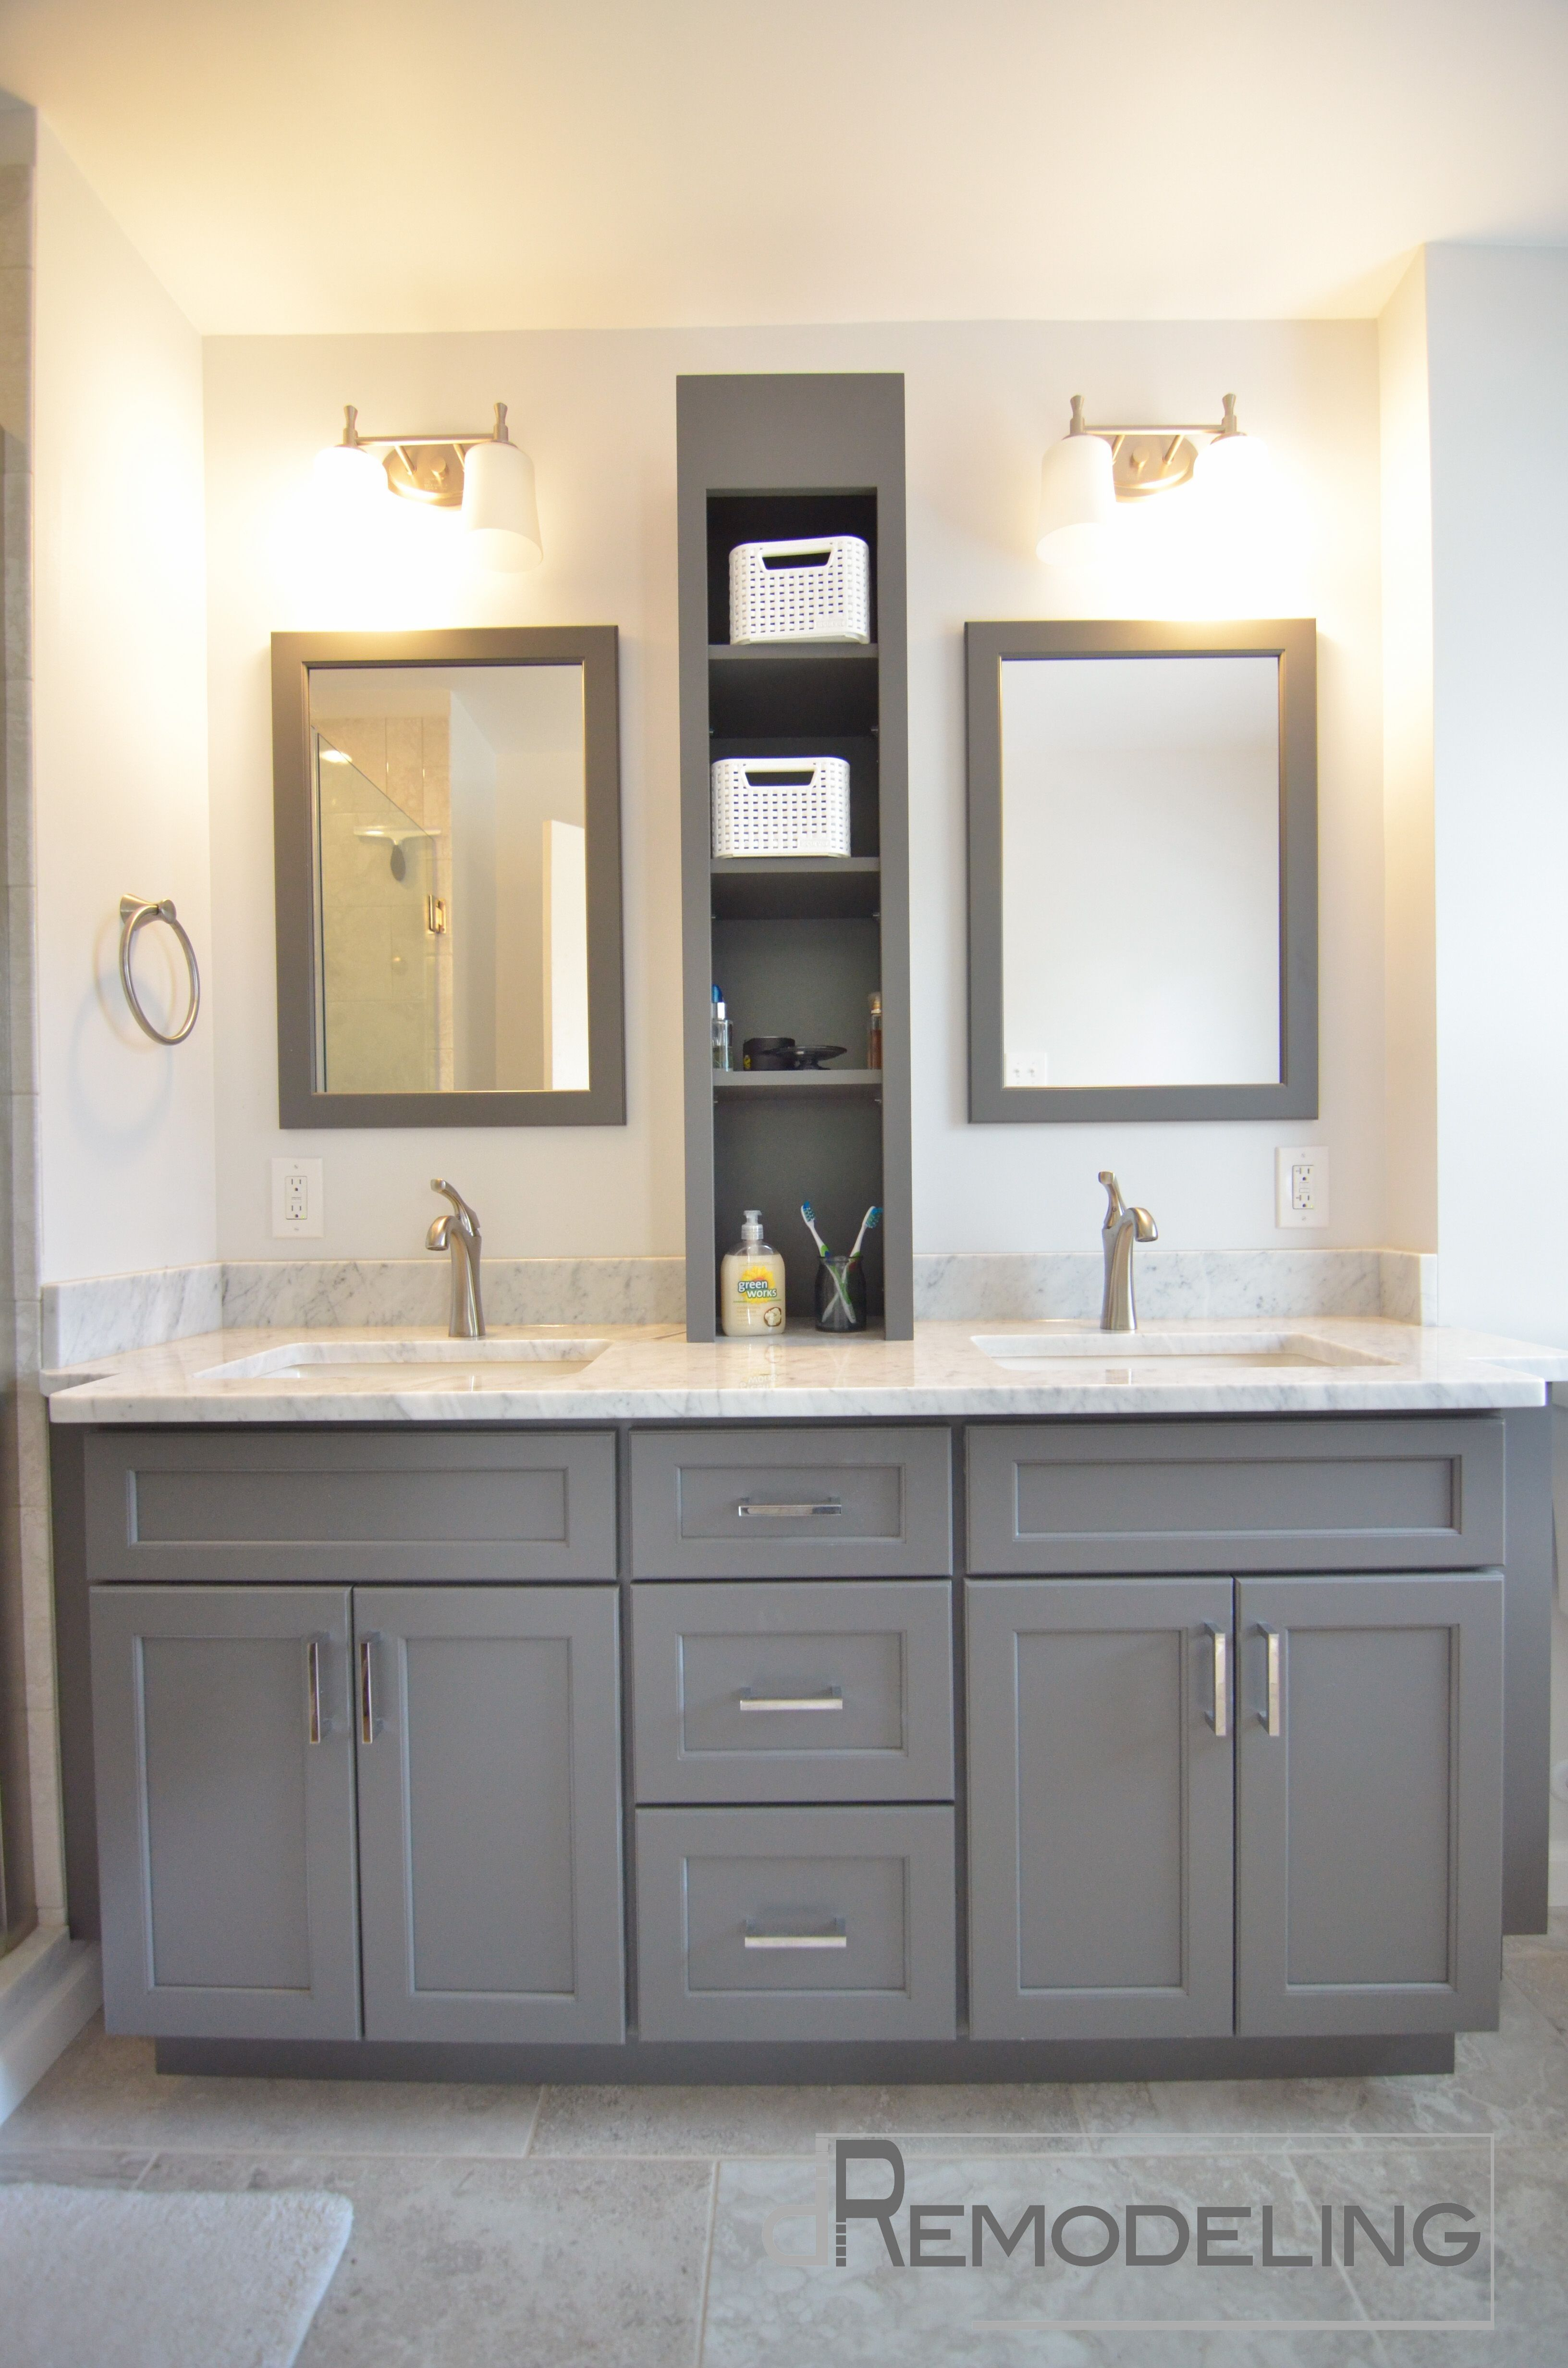 Unique A Simple Guide To Bathroom Double Vanity Mirror Ideas Ij13fv4 Https Ijcar 201 Small Space Bathroom Design Bathroom Remodel Master Small Space Bathroom